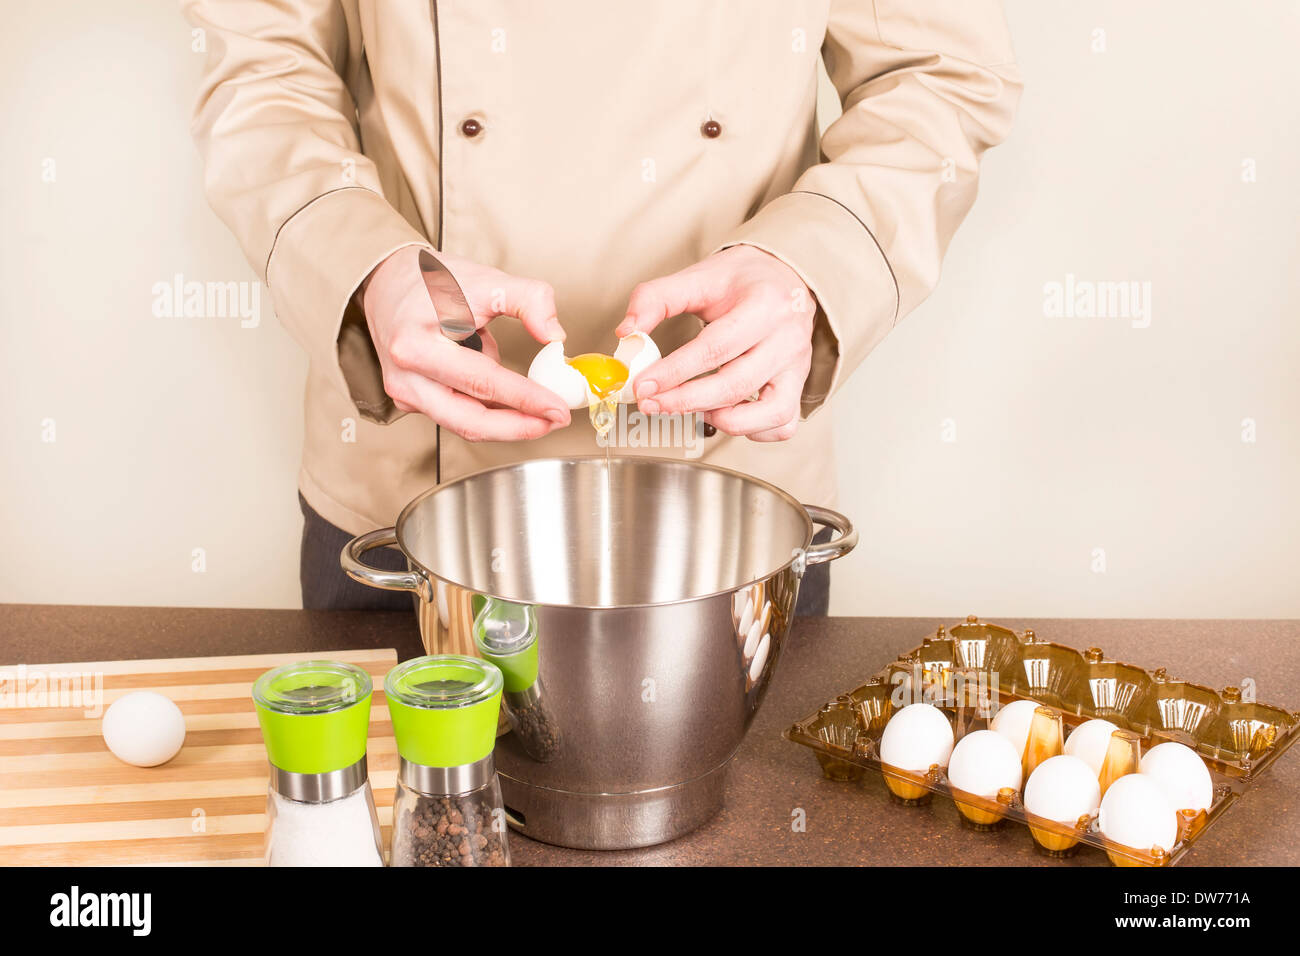 cook egg retrieves from the shell of for cooking - Stock Image